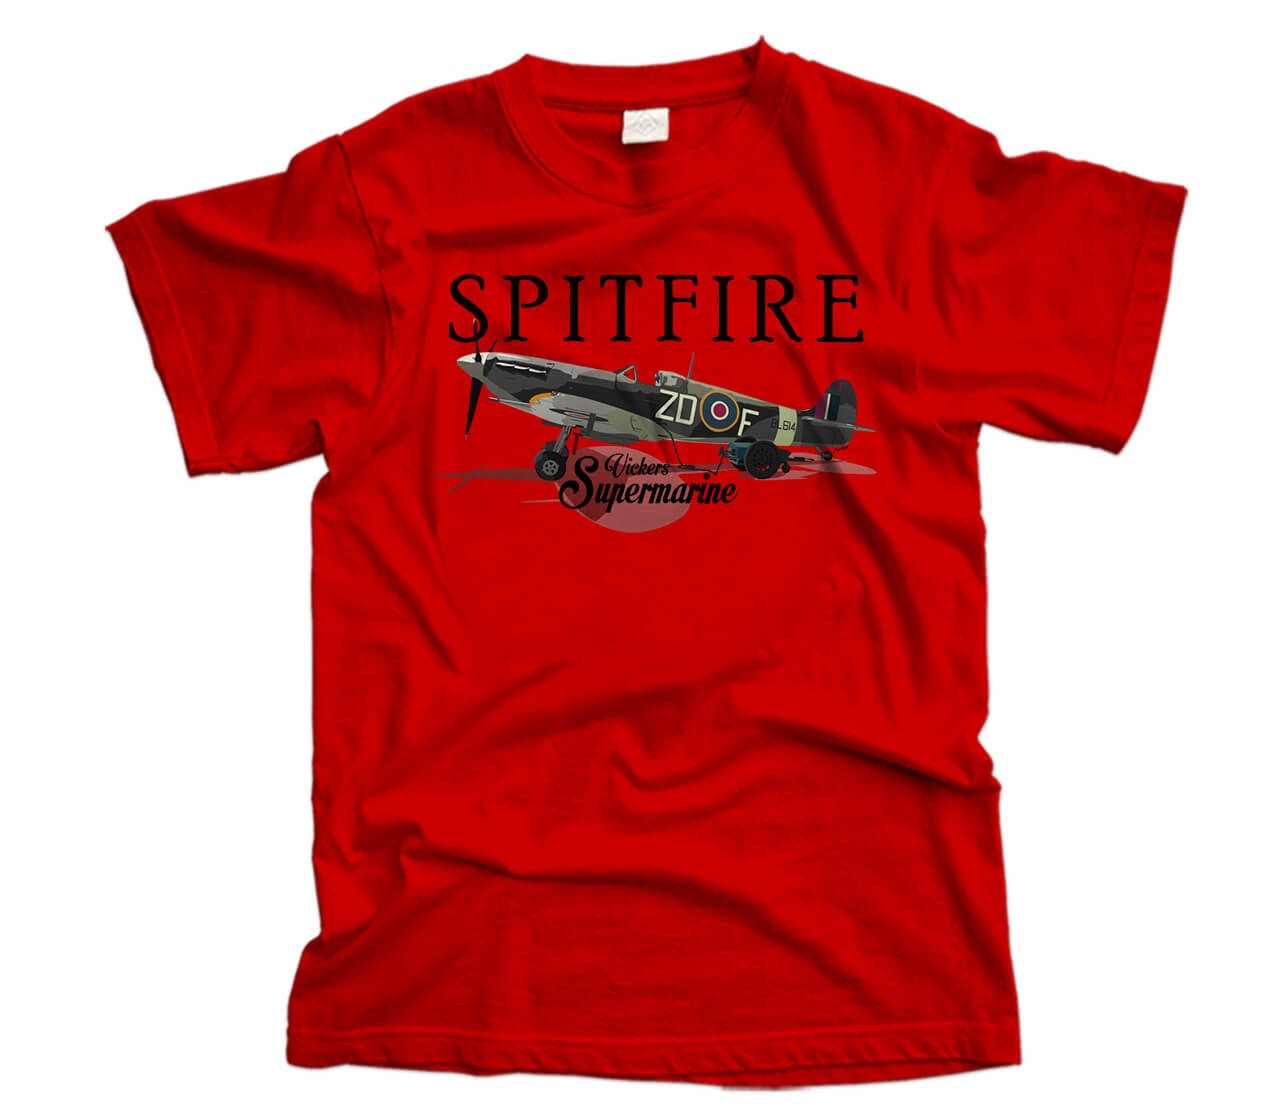 Vickers Supermarine Spitfire Aircraft T-Shirt